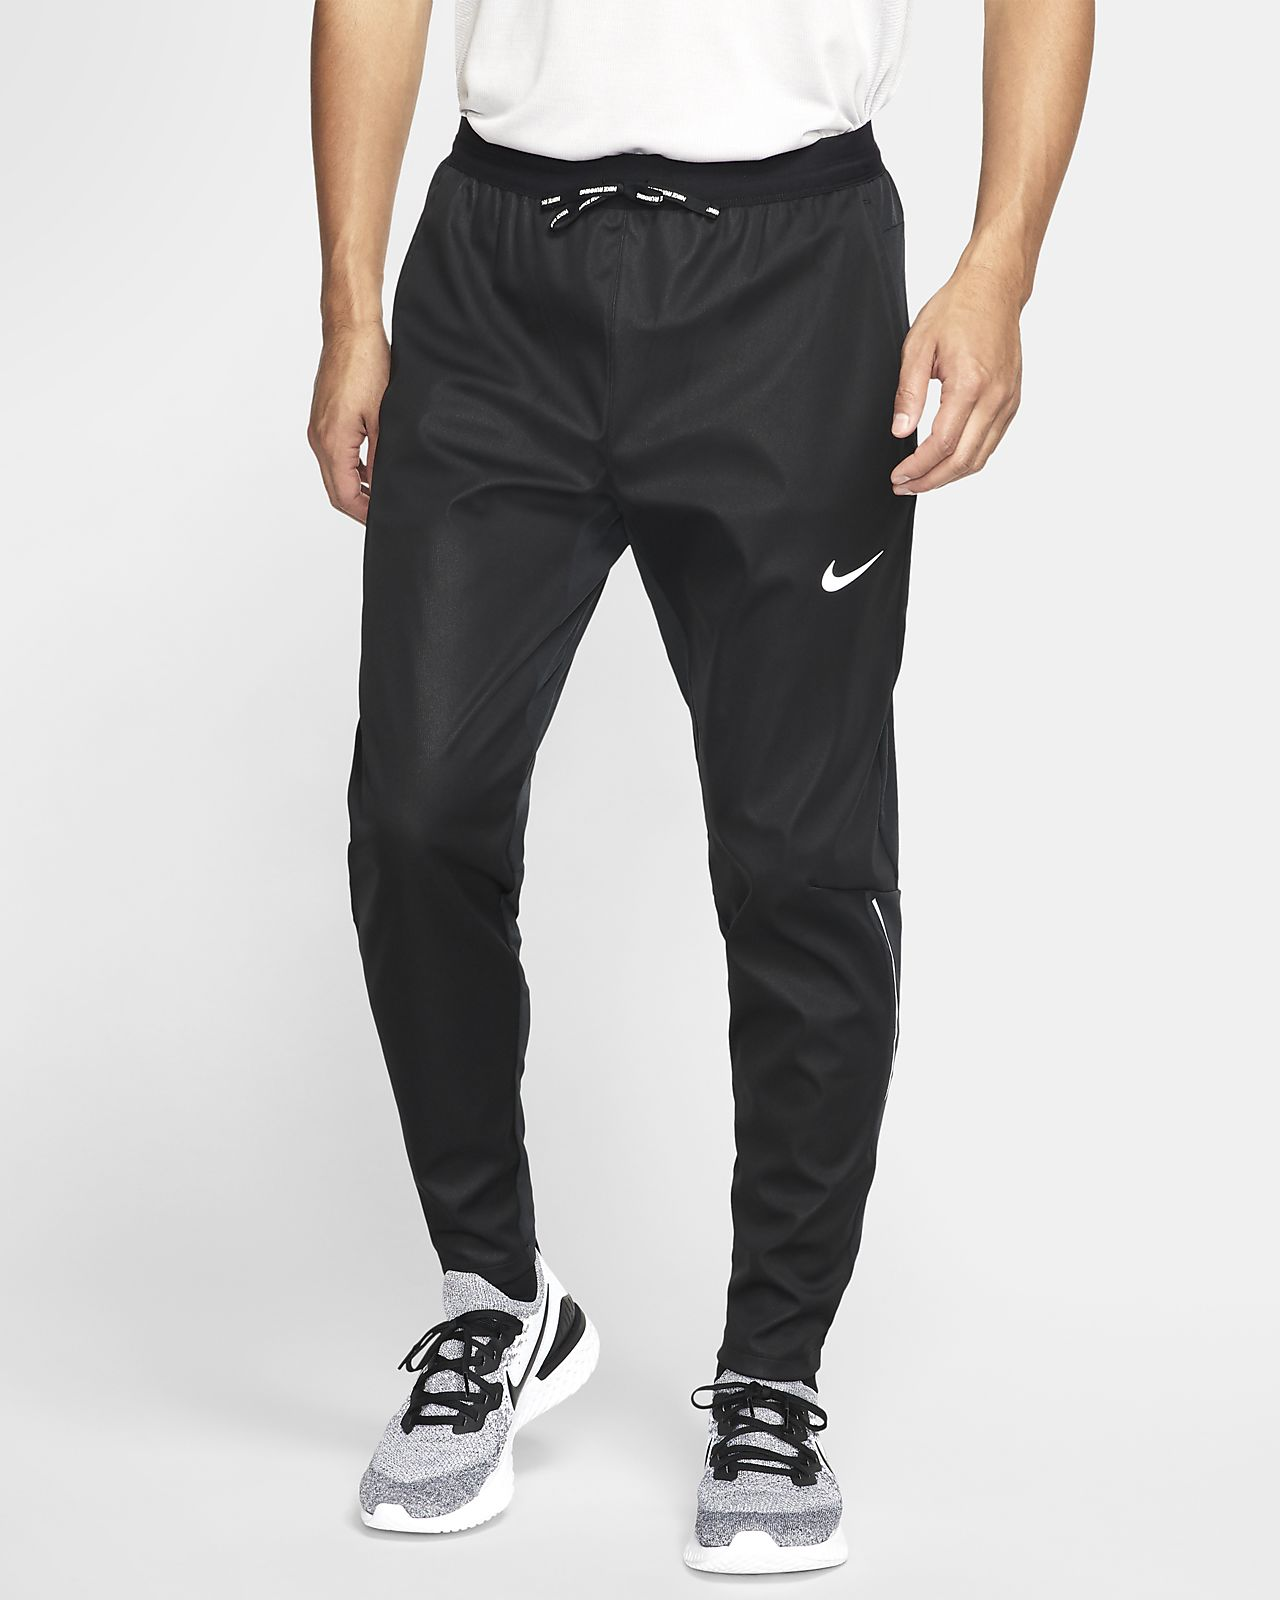 Pantalon de running Nike Shield Phenom pour Homme